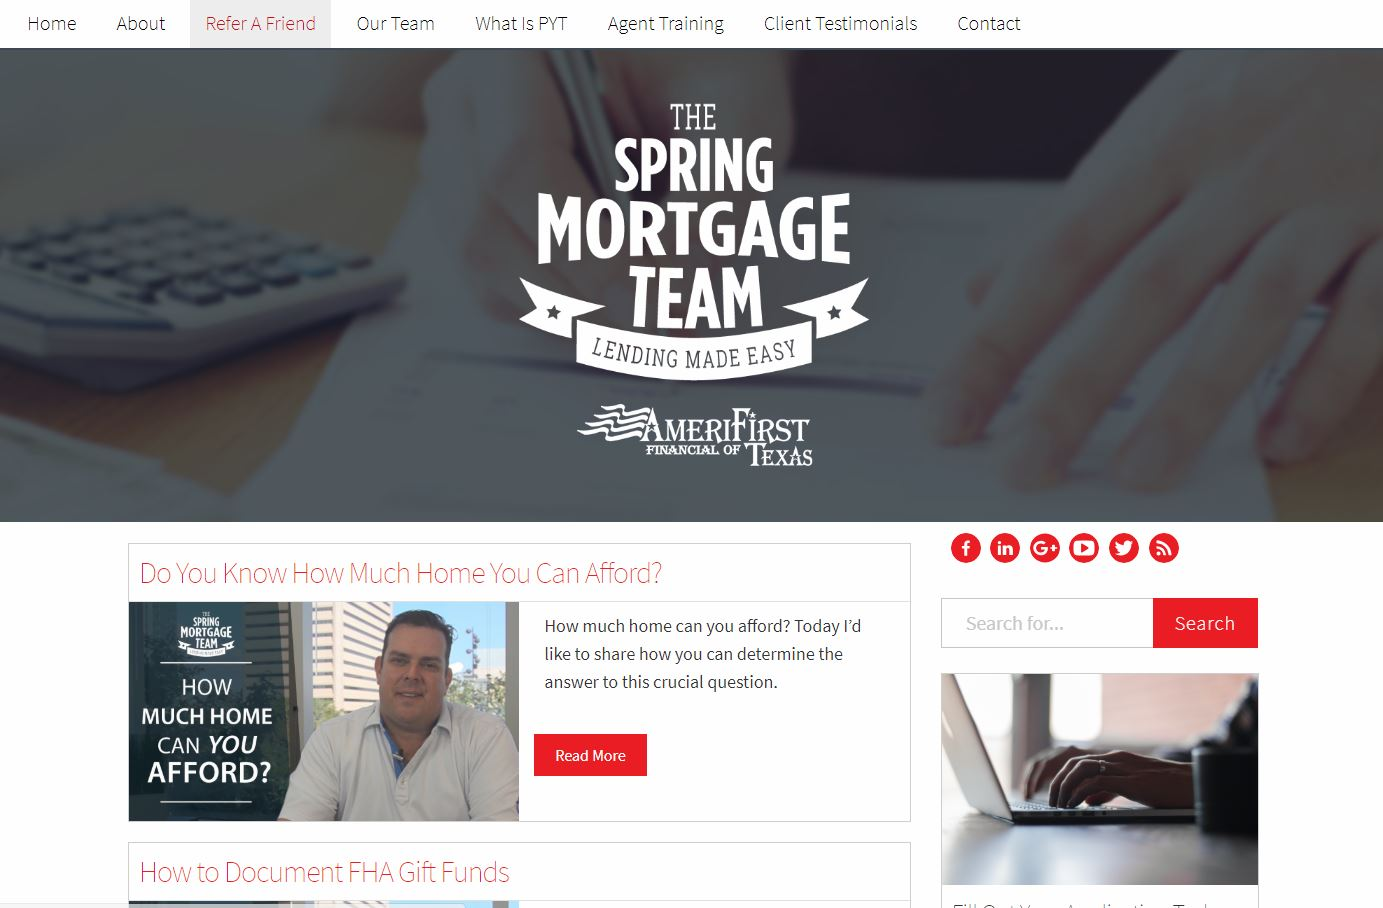 The Spring Mortgage Team